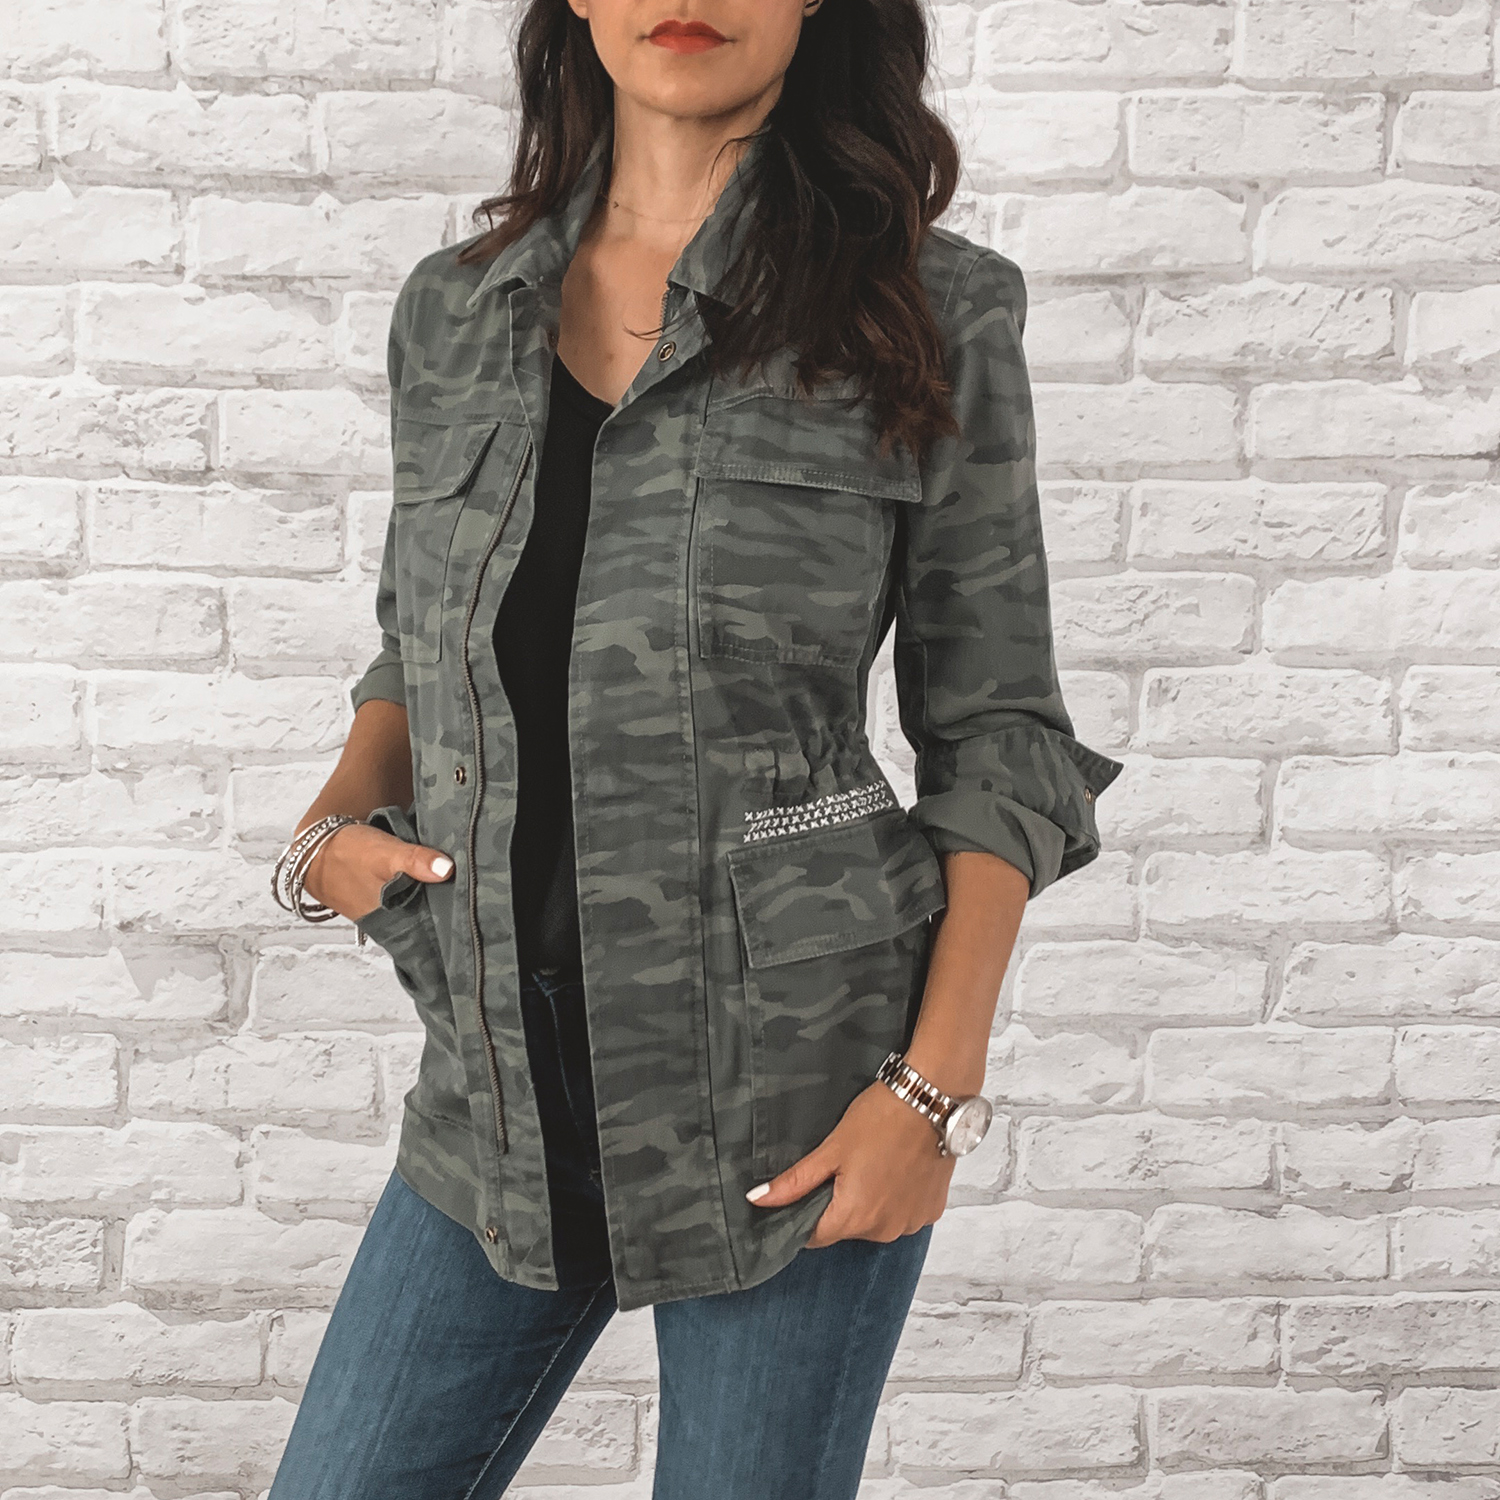 — OUTFIT DETAILS —    Caslon Camo Jacket      {Anniversary Price: $58.90 | After Sale: $89.00 | Wearing: Extra Small}  |   BP. Raw Edge Tee    {Anniversary Price: $15.90 | After Sale: $25.00 |Wearing: Small}  |   AG Farrah High Waisted Skinny Jeans      {Anniversary Price: $149.90 | After Sale: $225.00 |Wearing: 26}    — CCW DETAILS —    Blacksmith Tactical Holster with UltiClip     | Glock 43